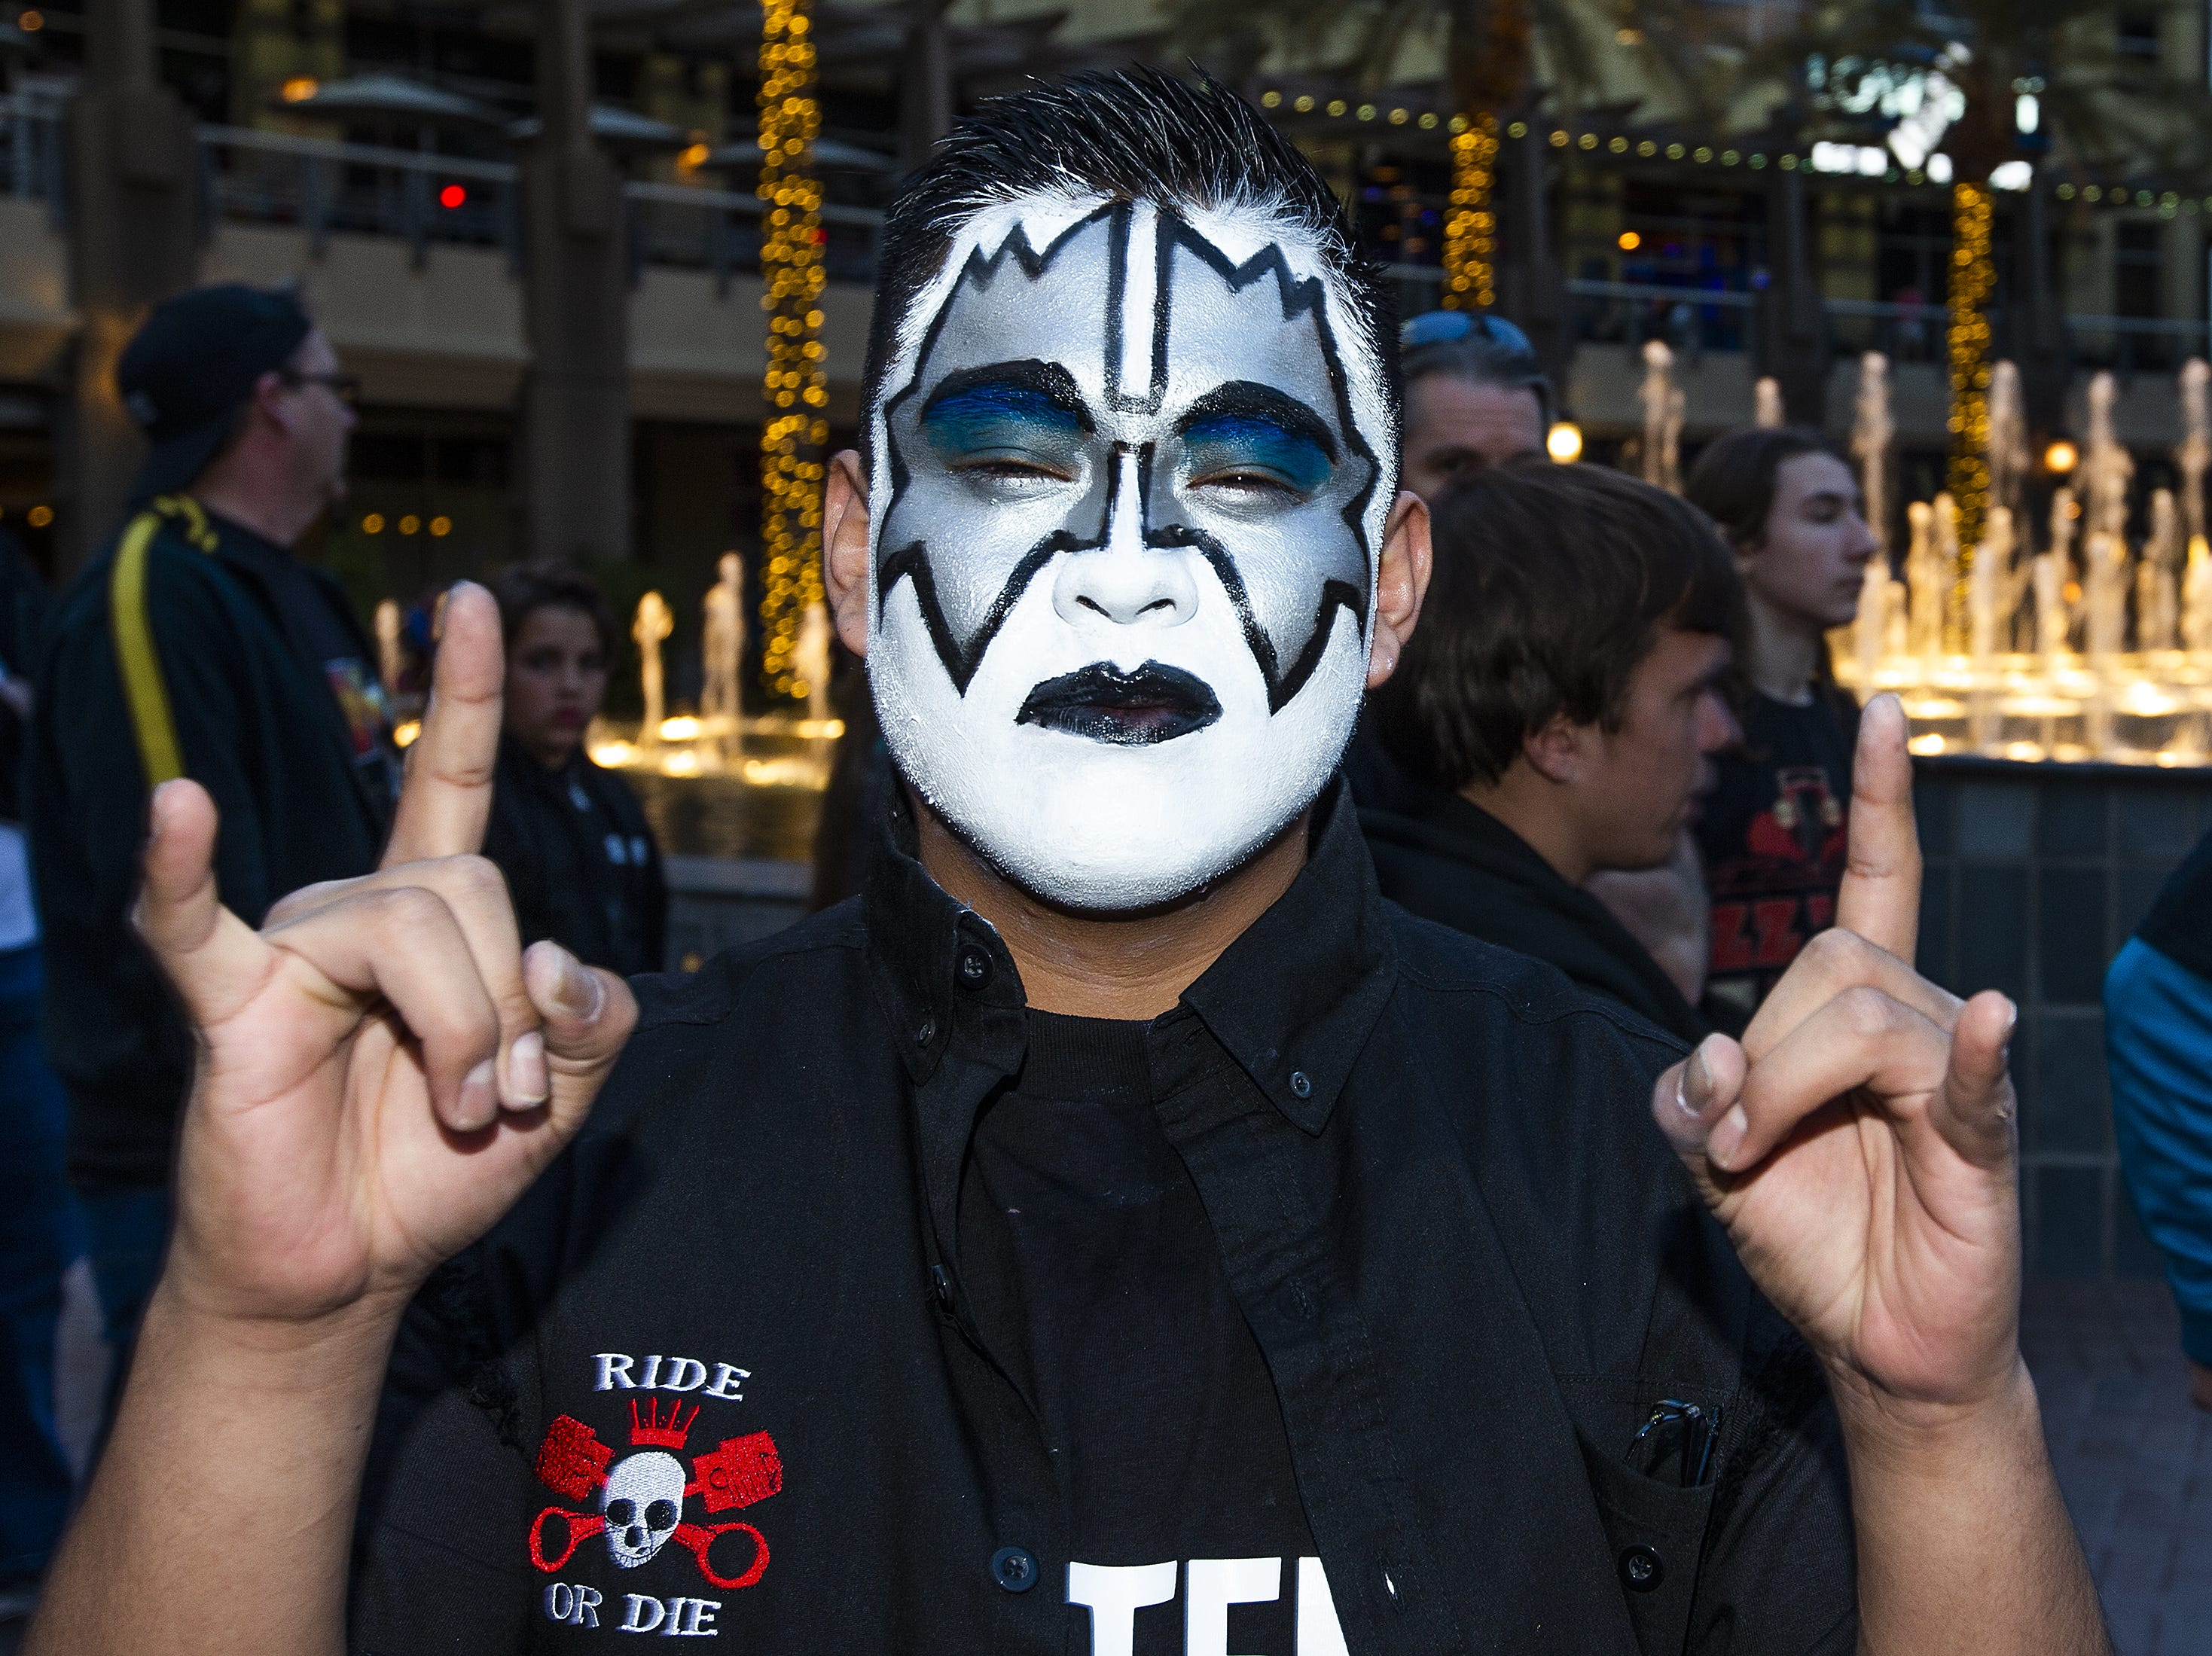 Jackson Tsosie, 25, of Glendale shows off his best KISS makeup prior to the concert by the famed group at Gila River Arena in Glendale on Wednesday, Feb. 13, 2019.  The concert was part of the End of the Road World Tour, the band's farewell to the fans.